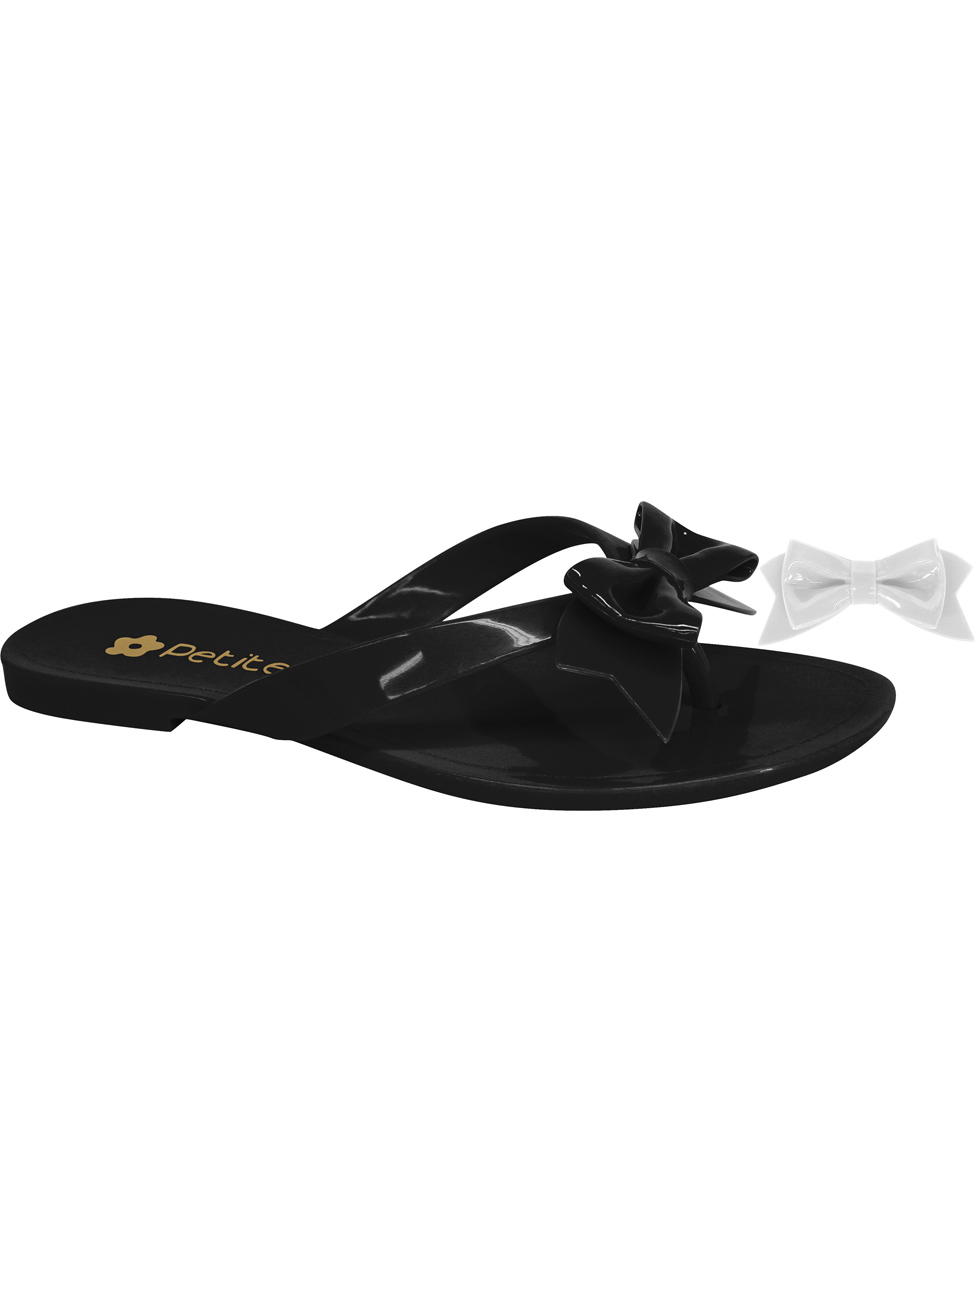 Black bow flip-flops with extra bow